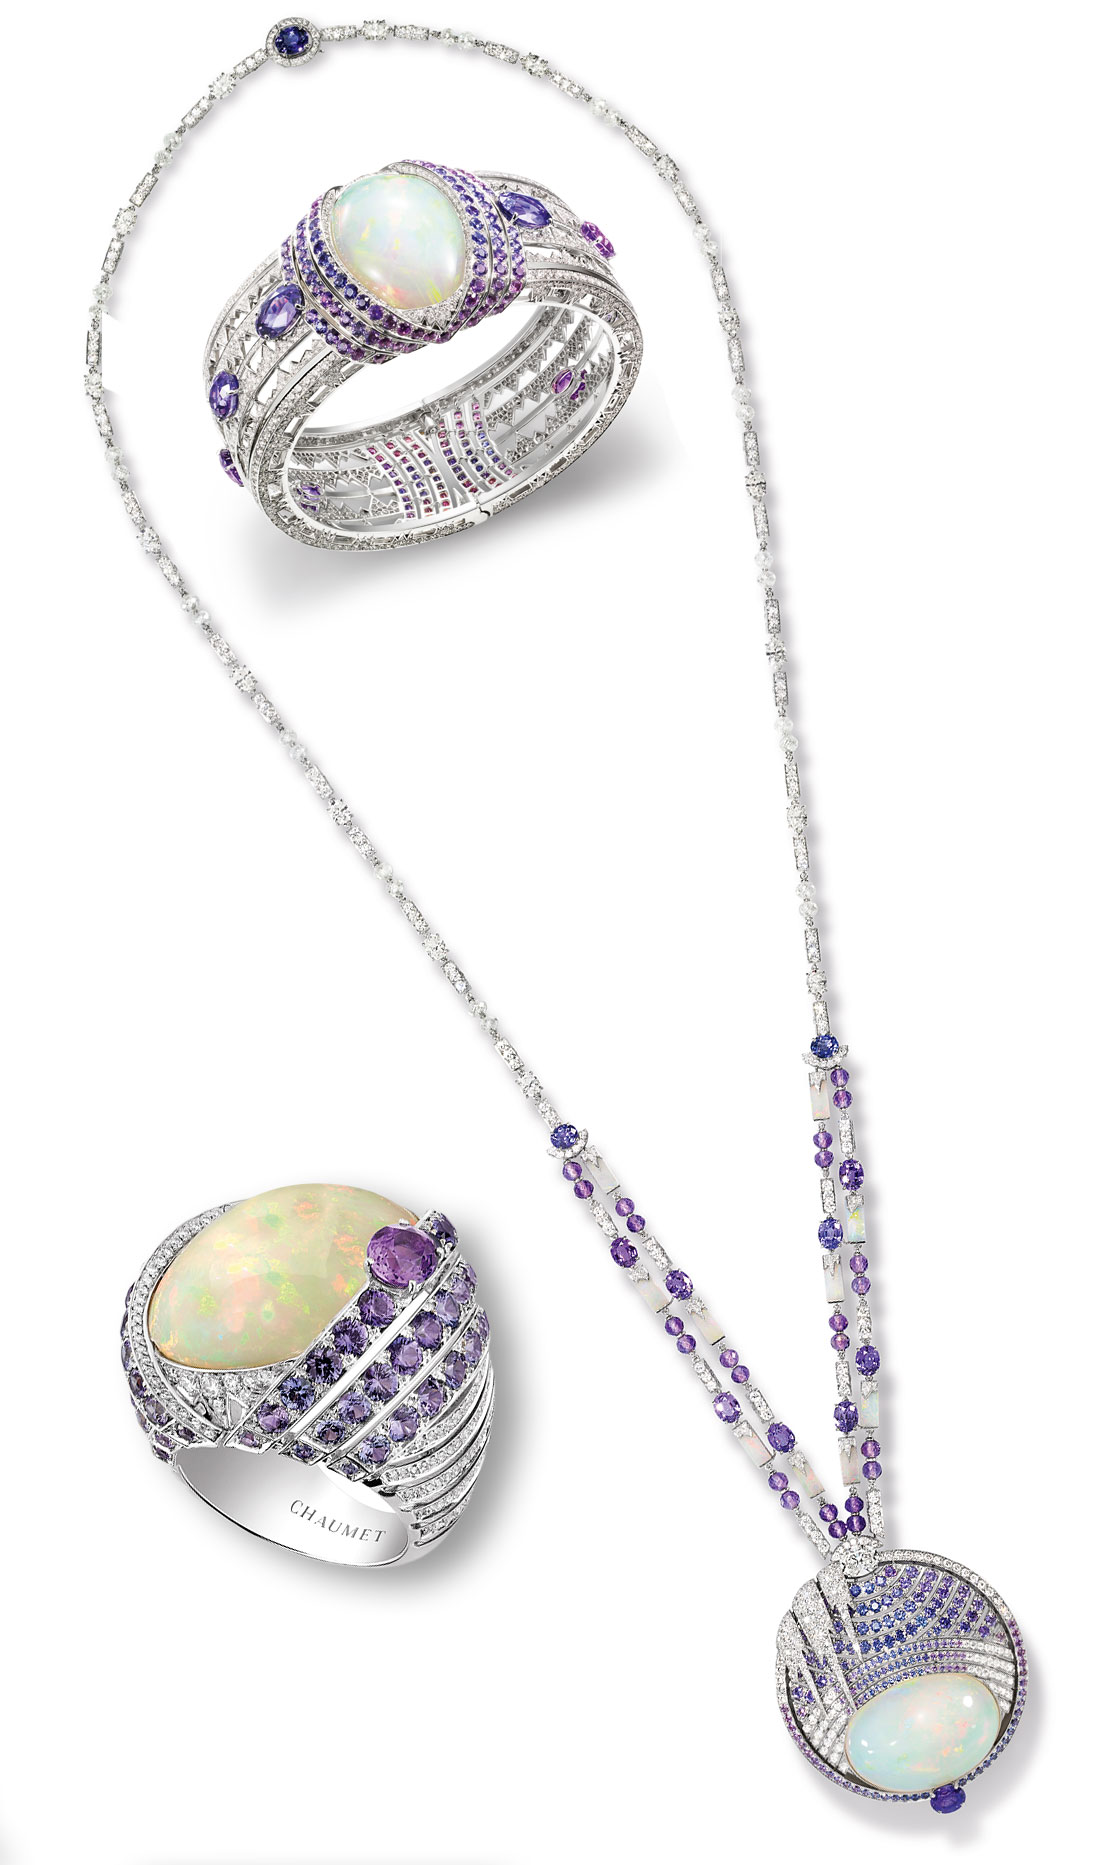 Chaumet Opal Pieces from Lumieres D